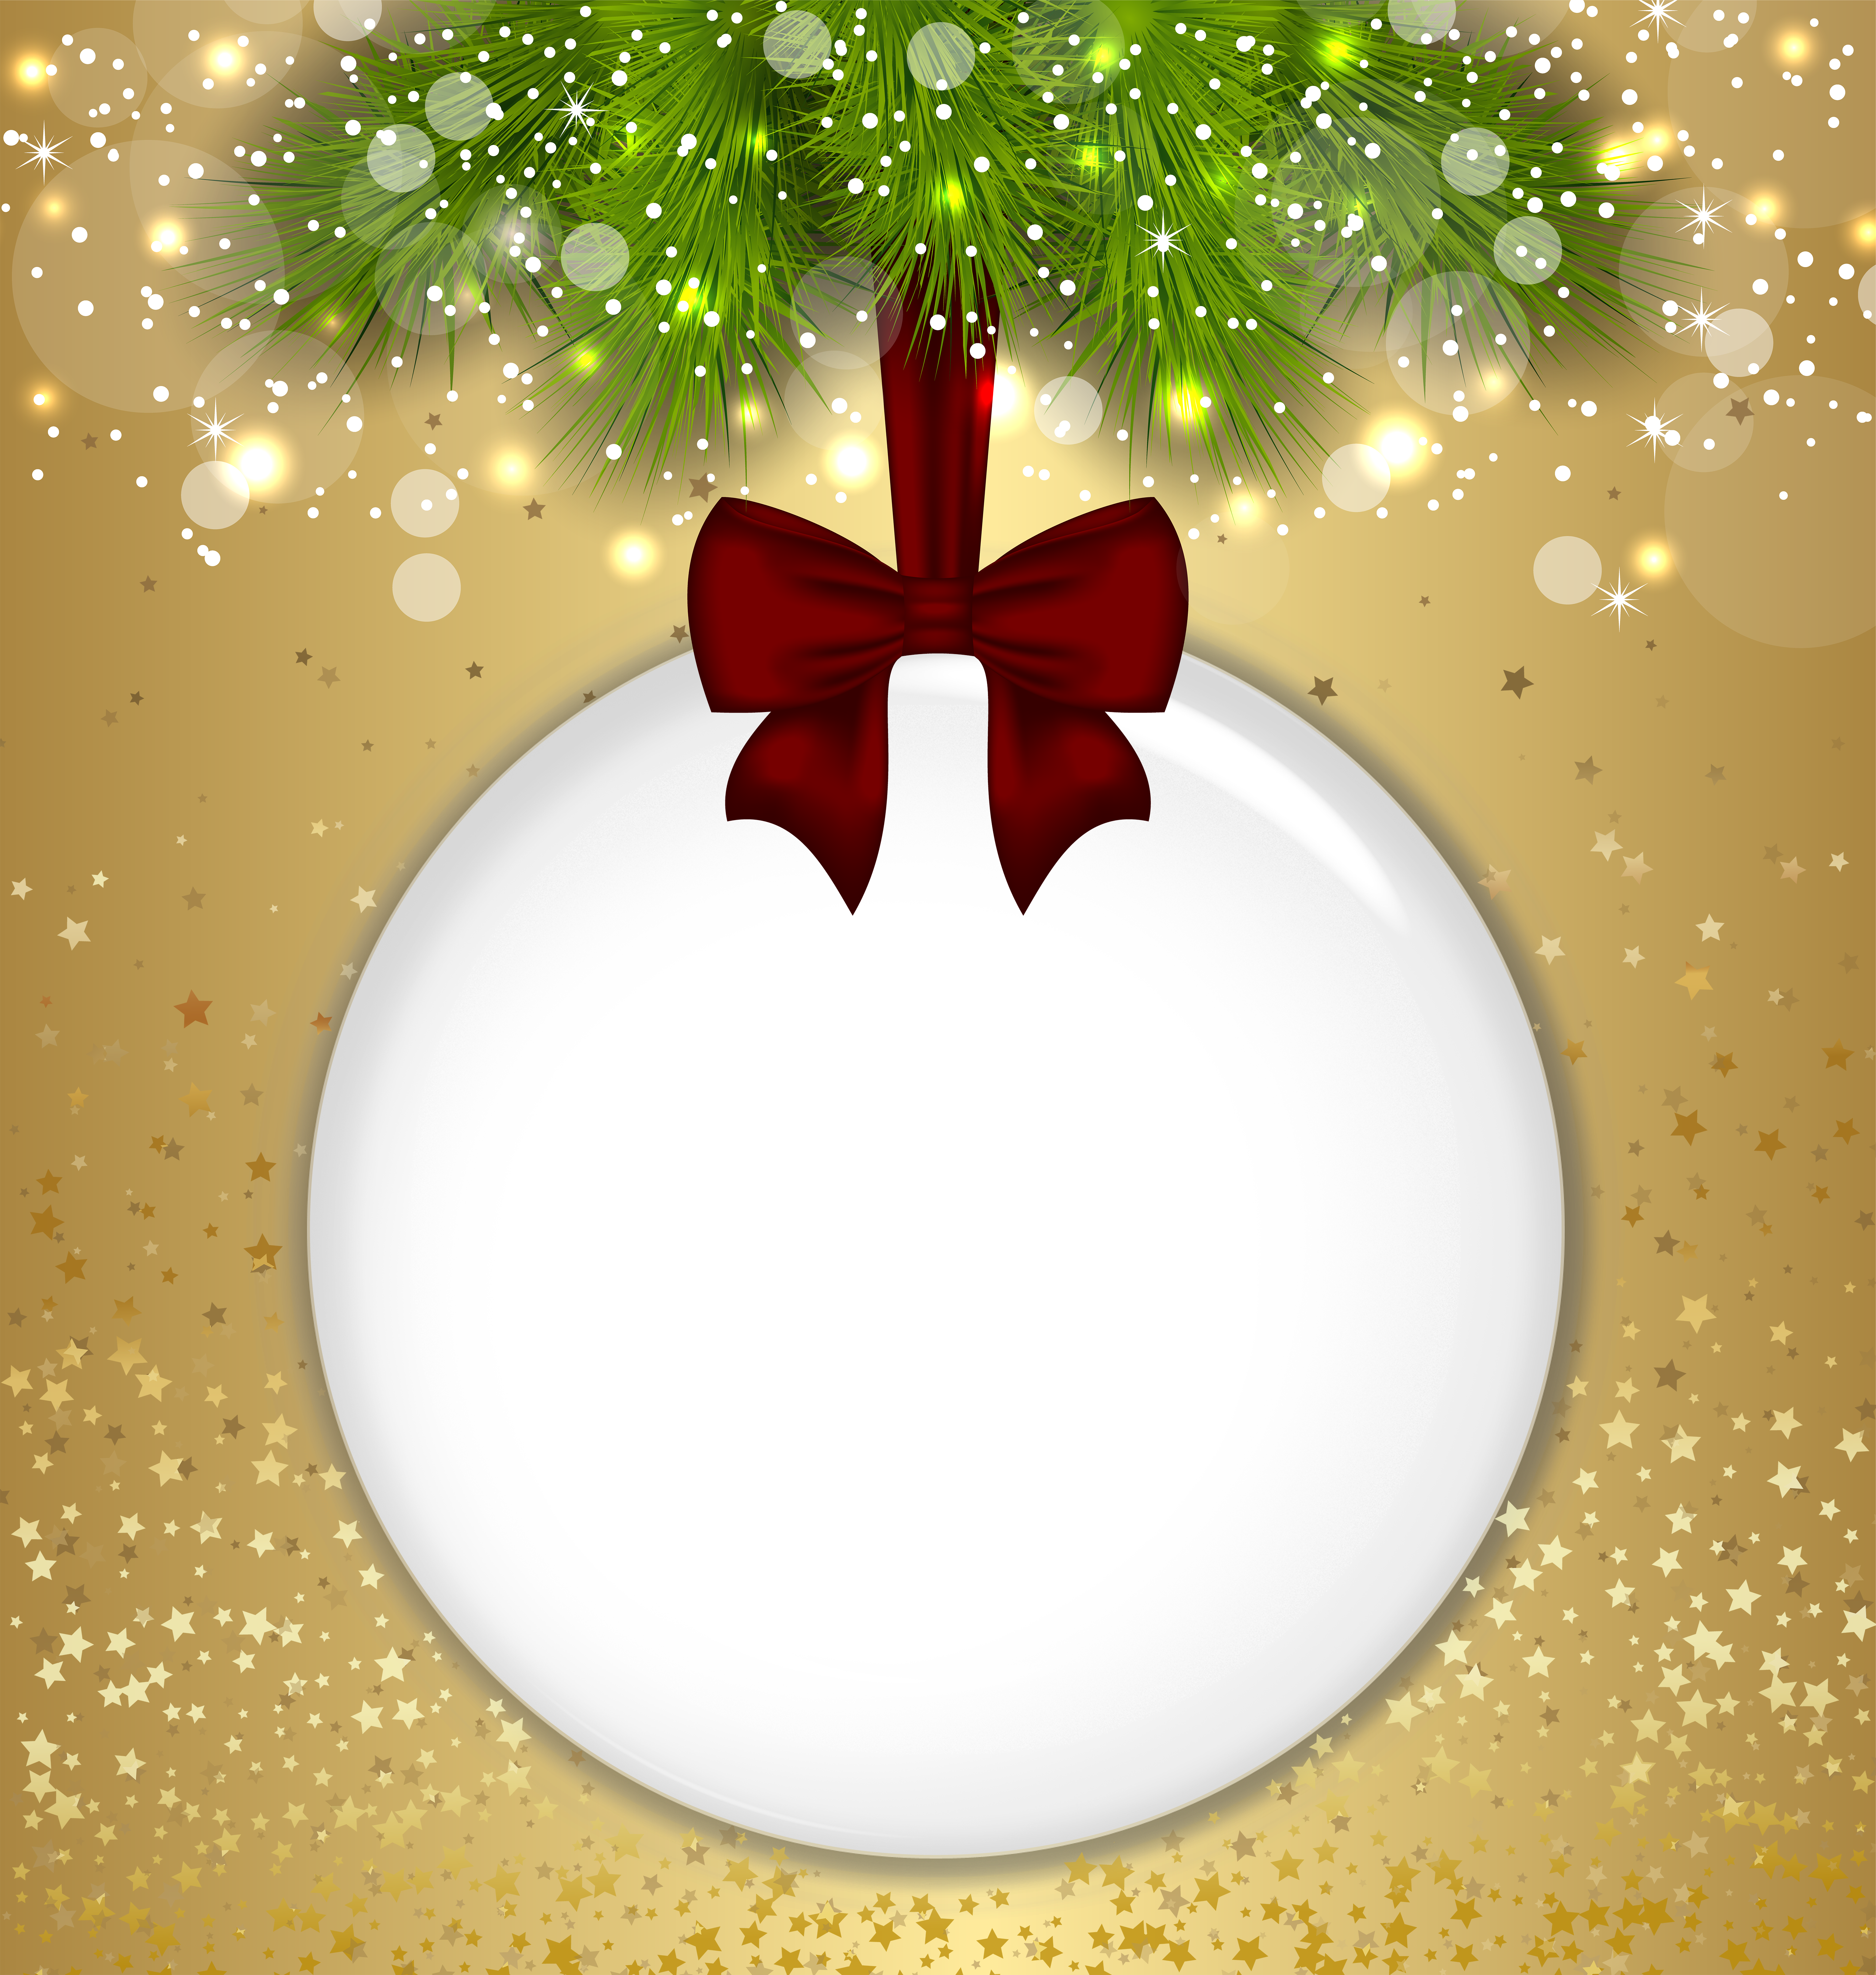 Ball clipart frame. Christmas transparent png gold